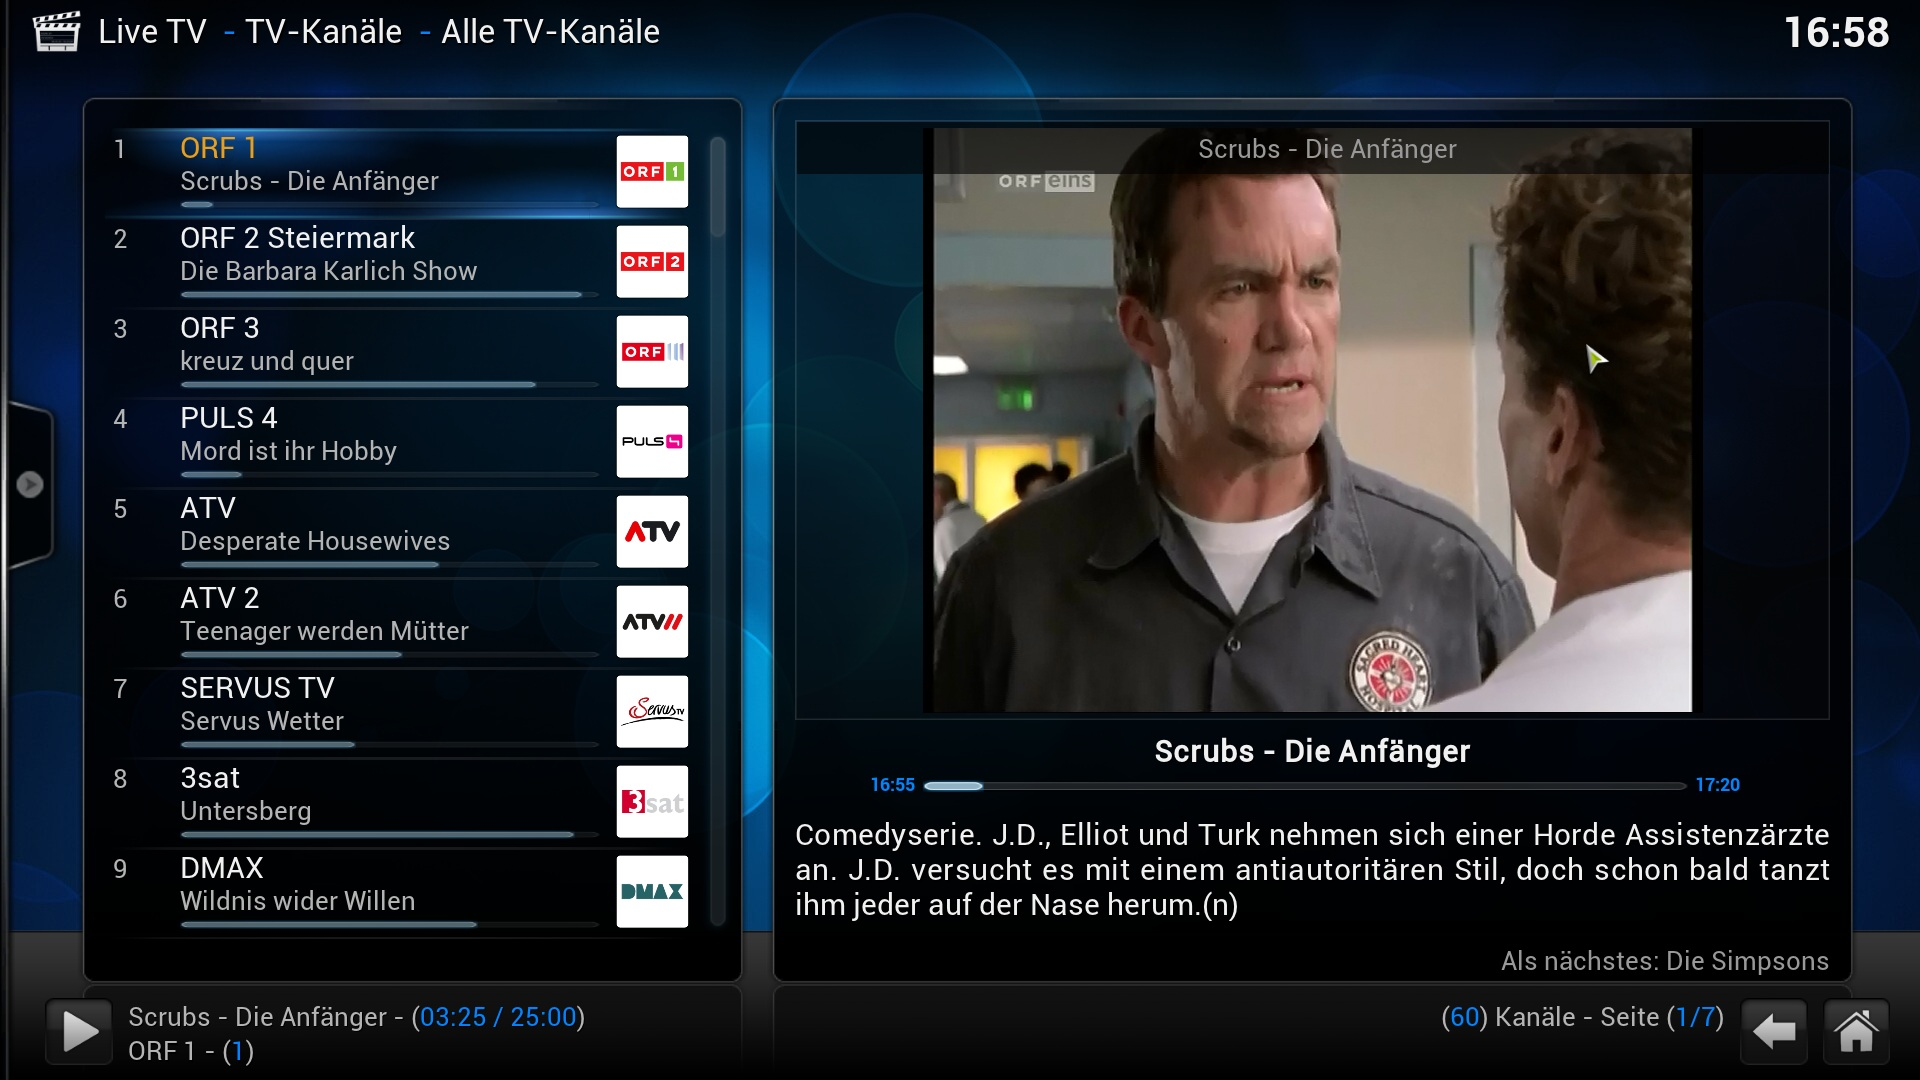 A1 TV XBMC Live TV Rasperry & Windows  - Screen 1.jpg